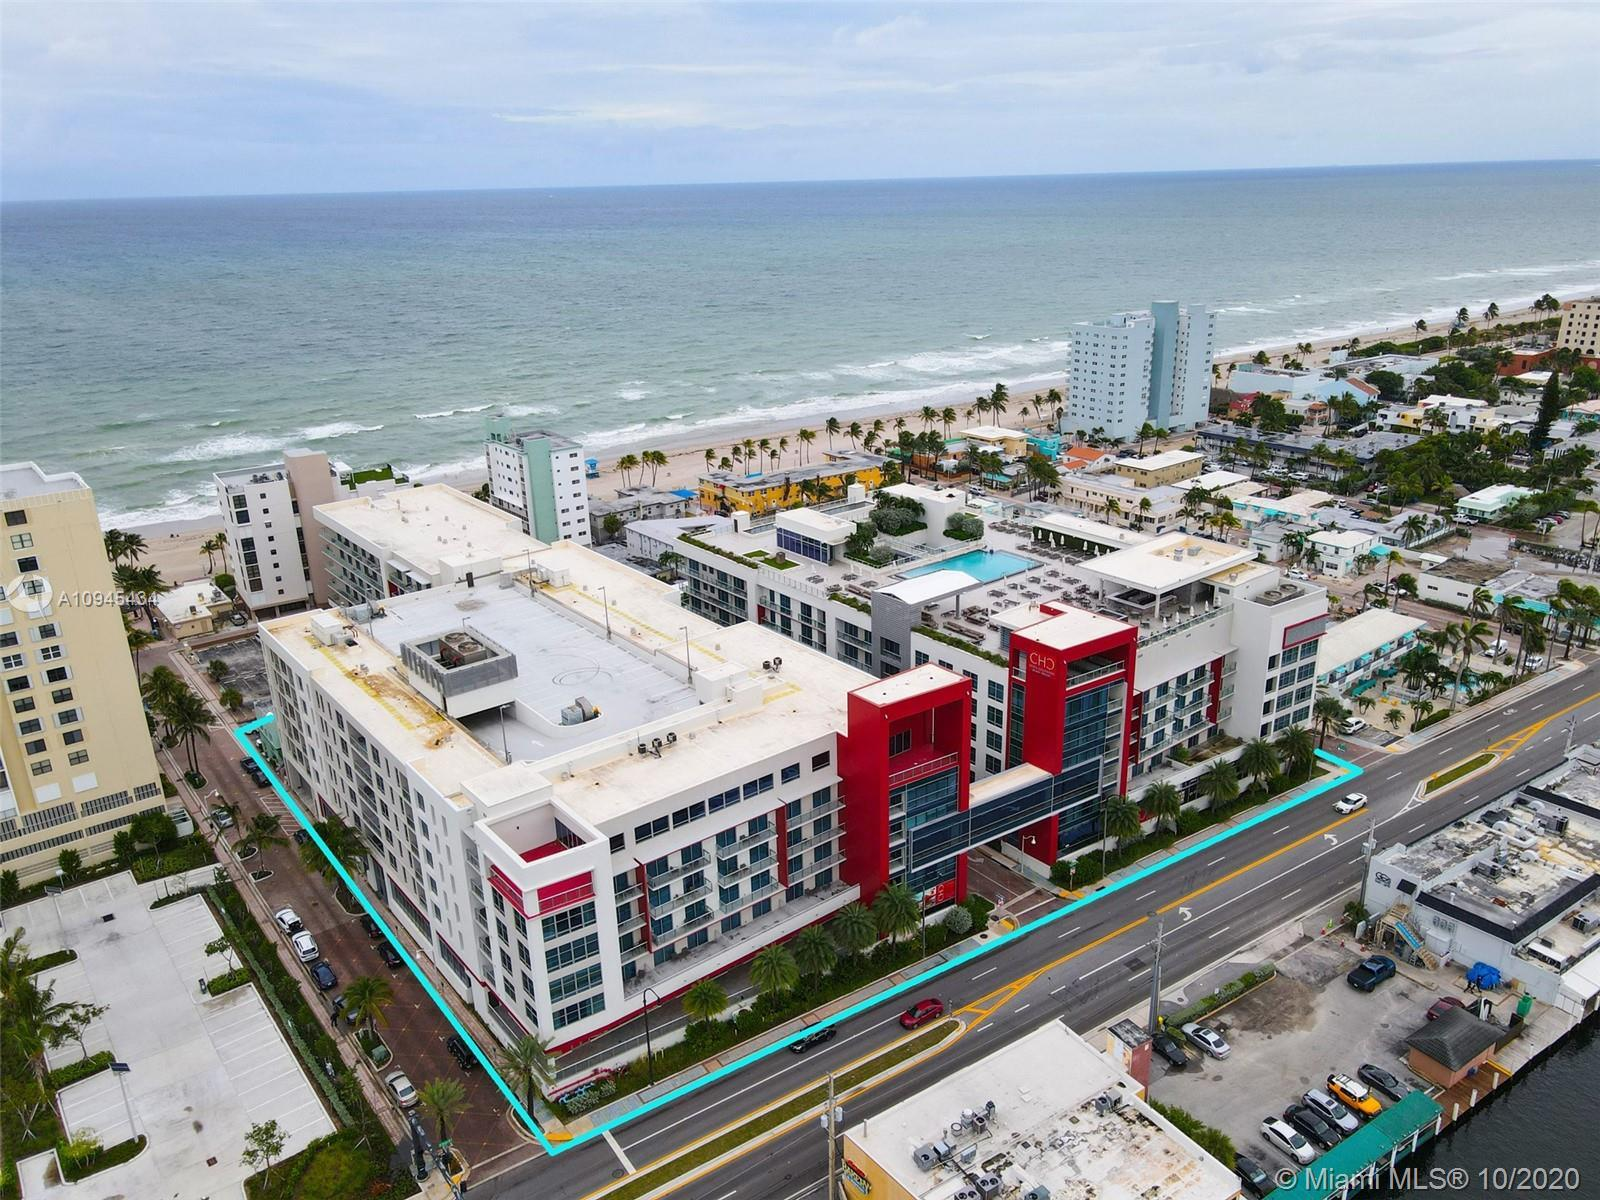 This nicely furnished condo-hotel can be used by the owner or rented without any restrictions.  The